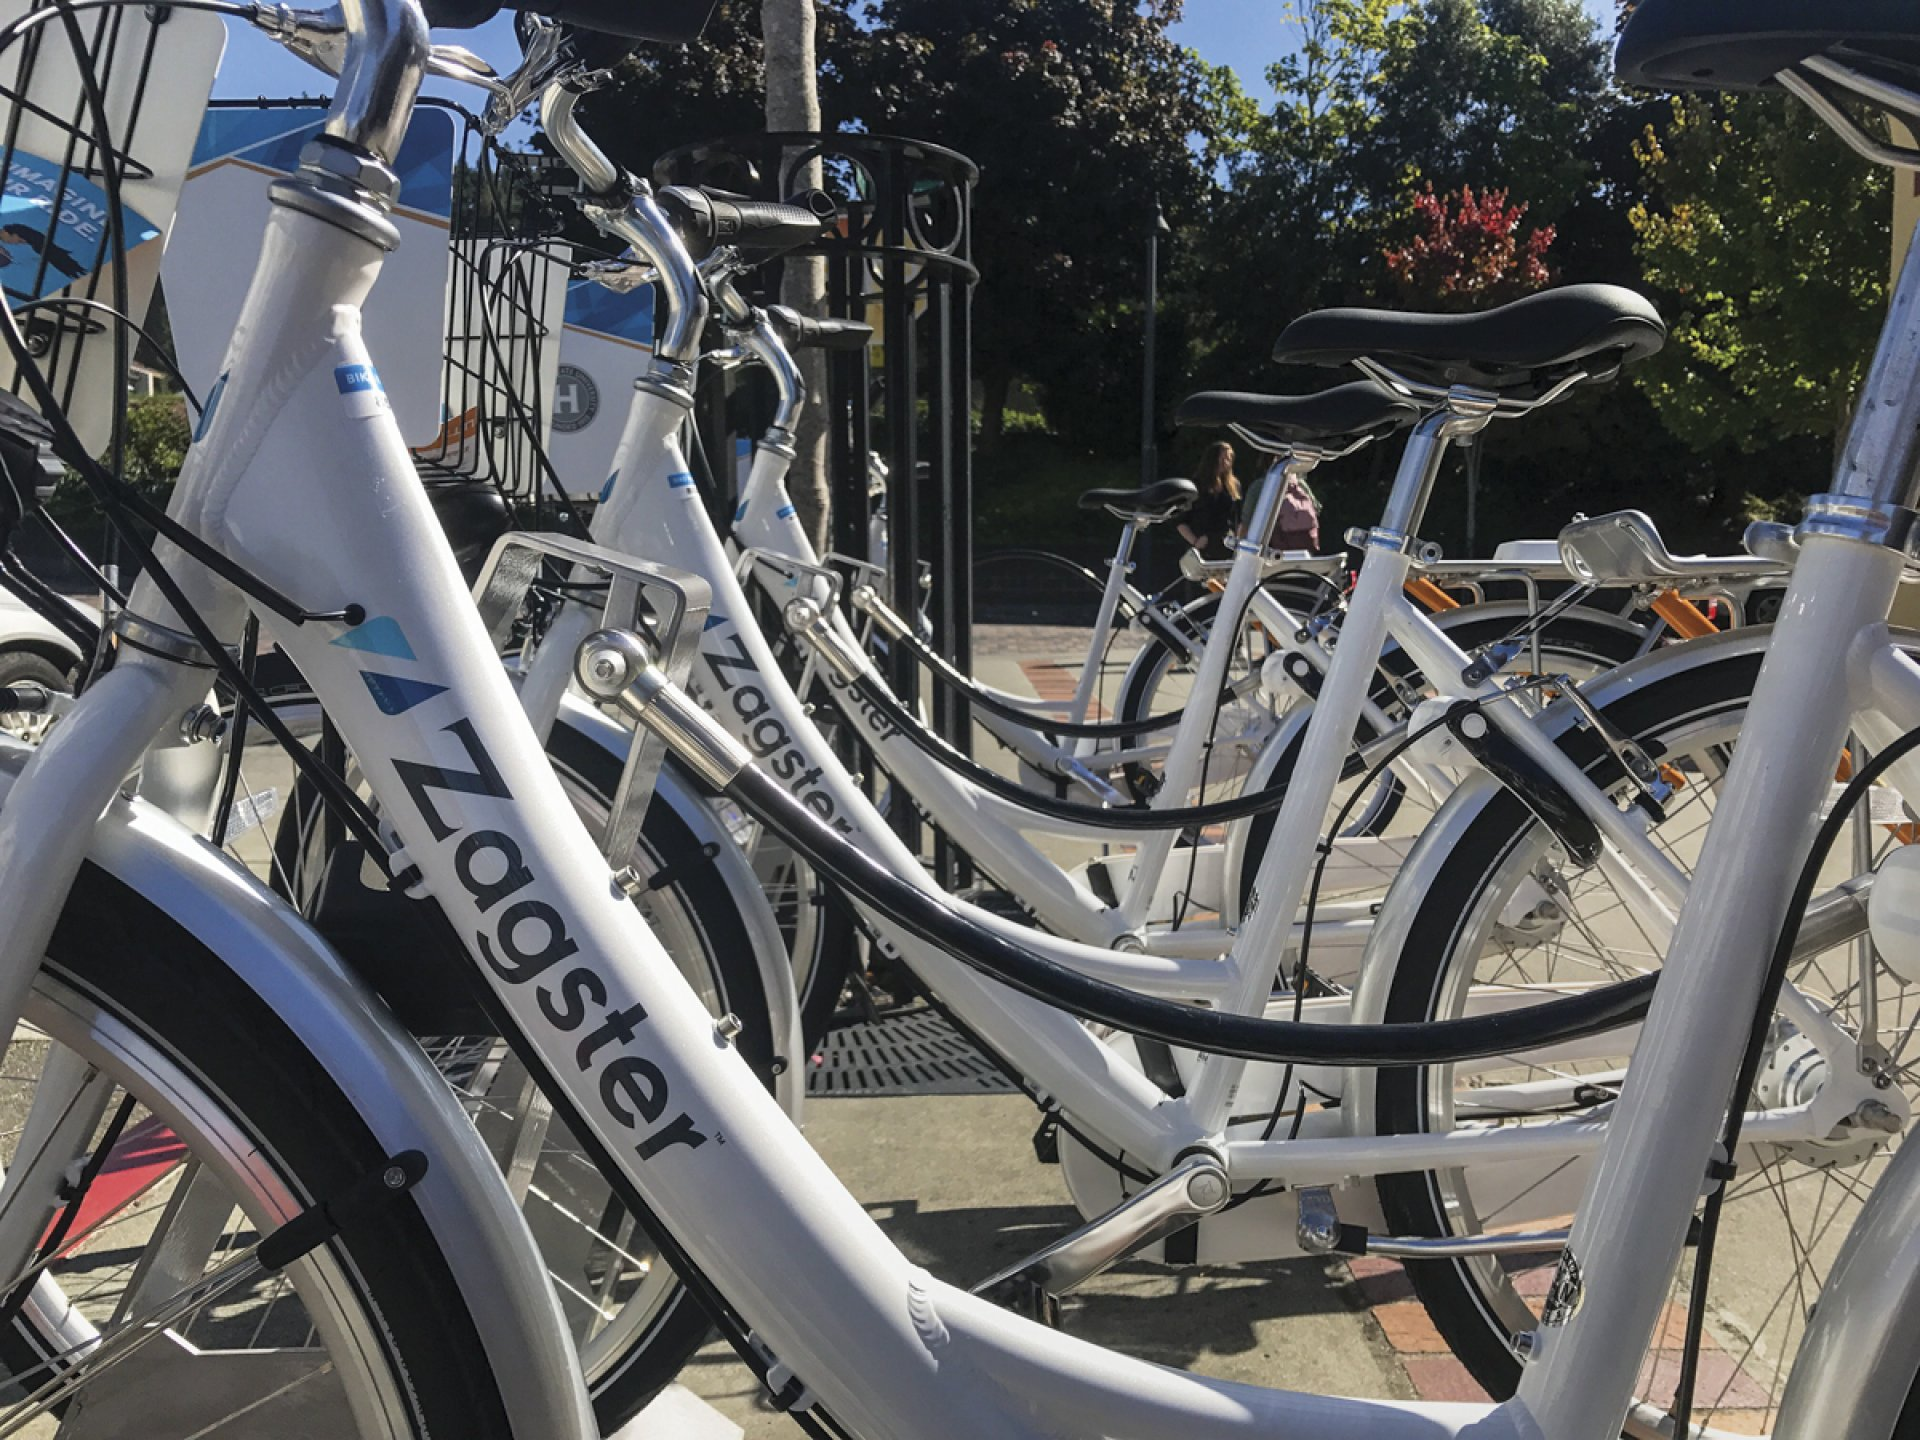 Bike share at Harry Griffith Hall. Photo credit: Andre Hascall